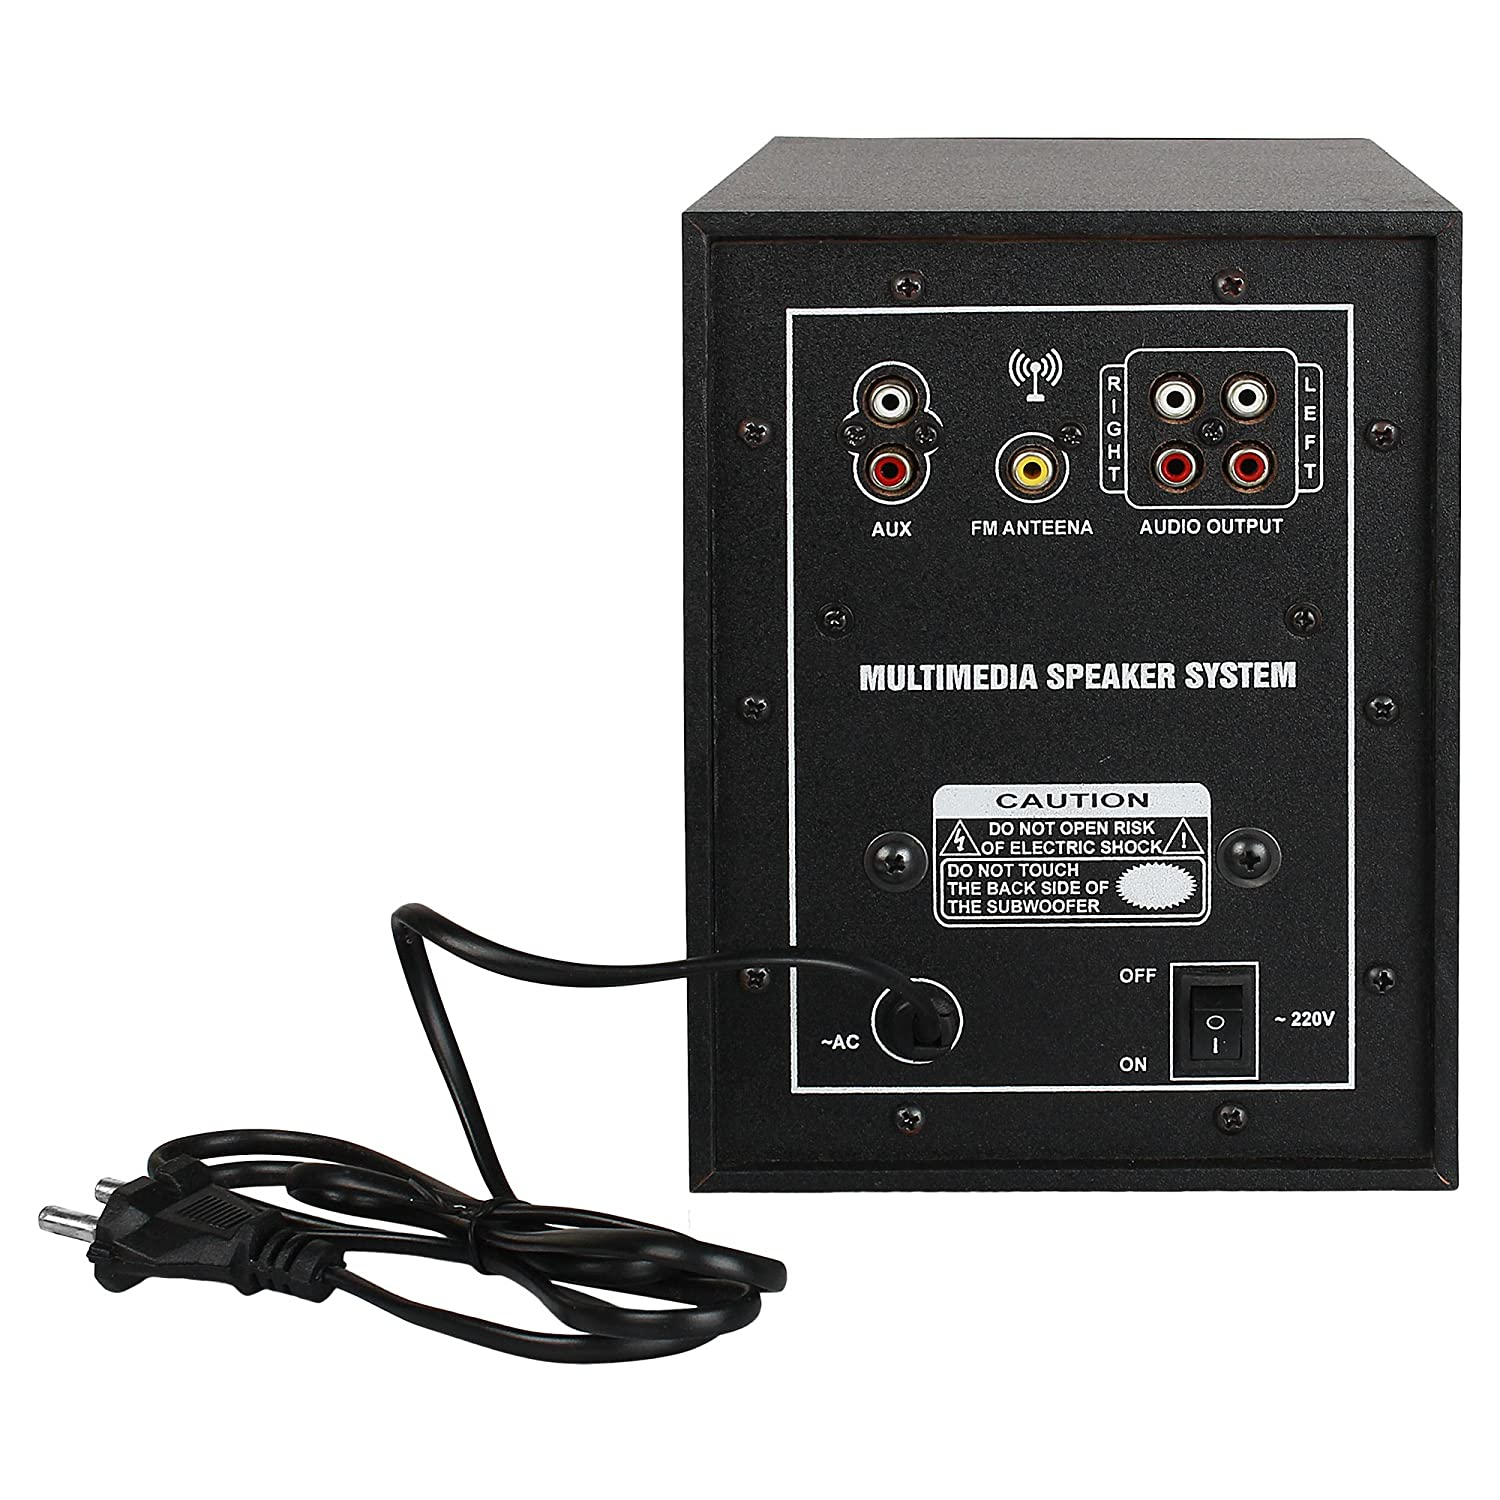 Tronica Bt 21 Home Theater System Black Price Buy Amplifier Using Tda2009a 12 Watt 15x2 Audio Online In India